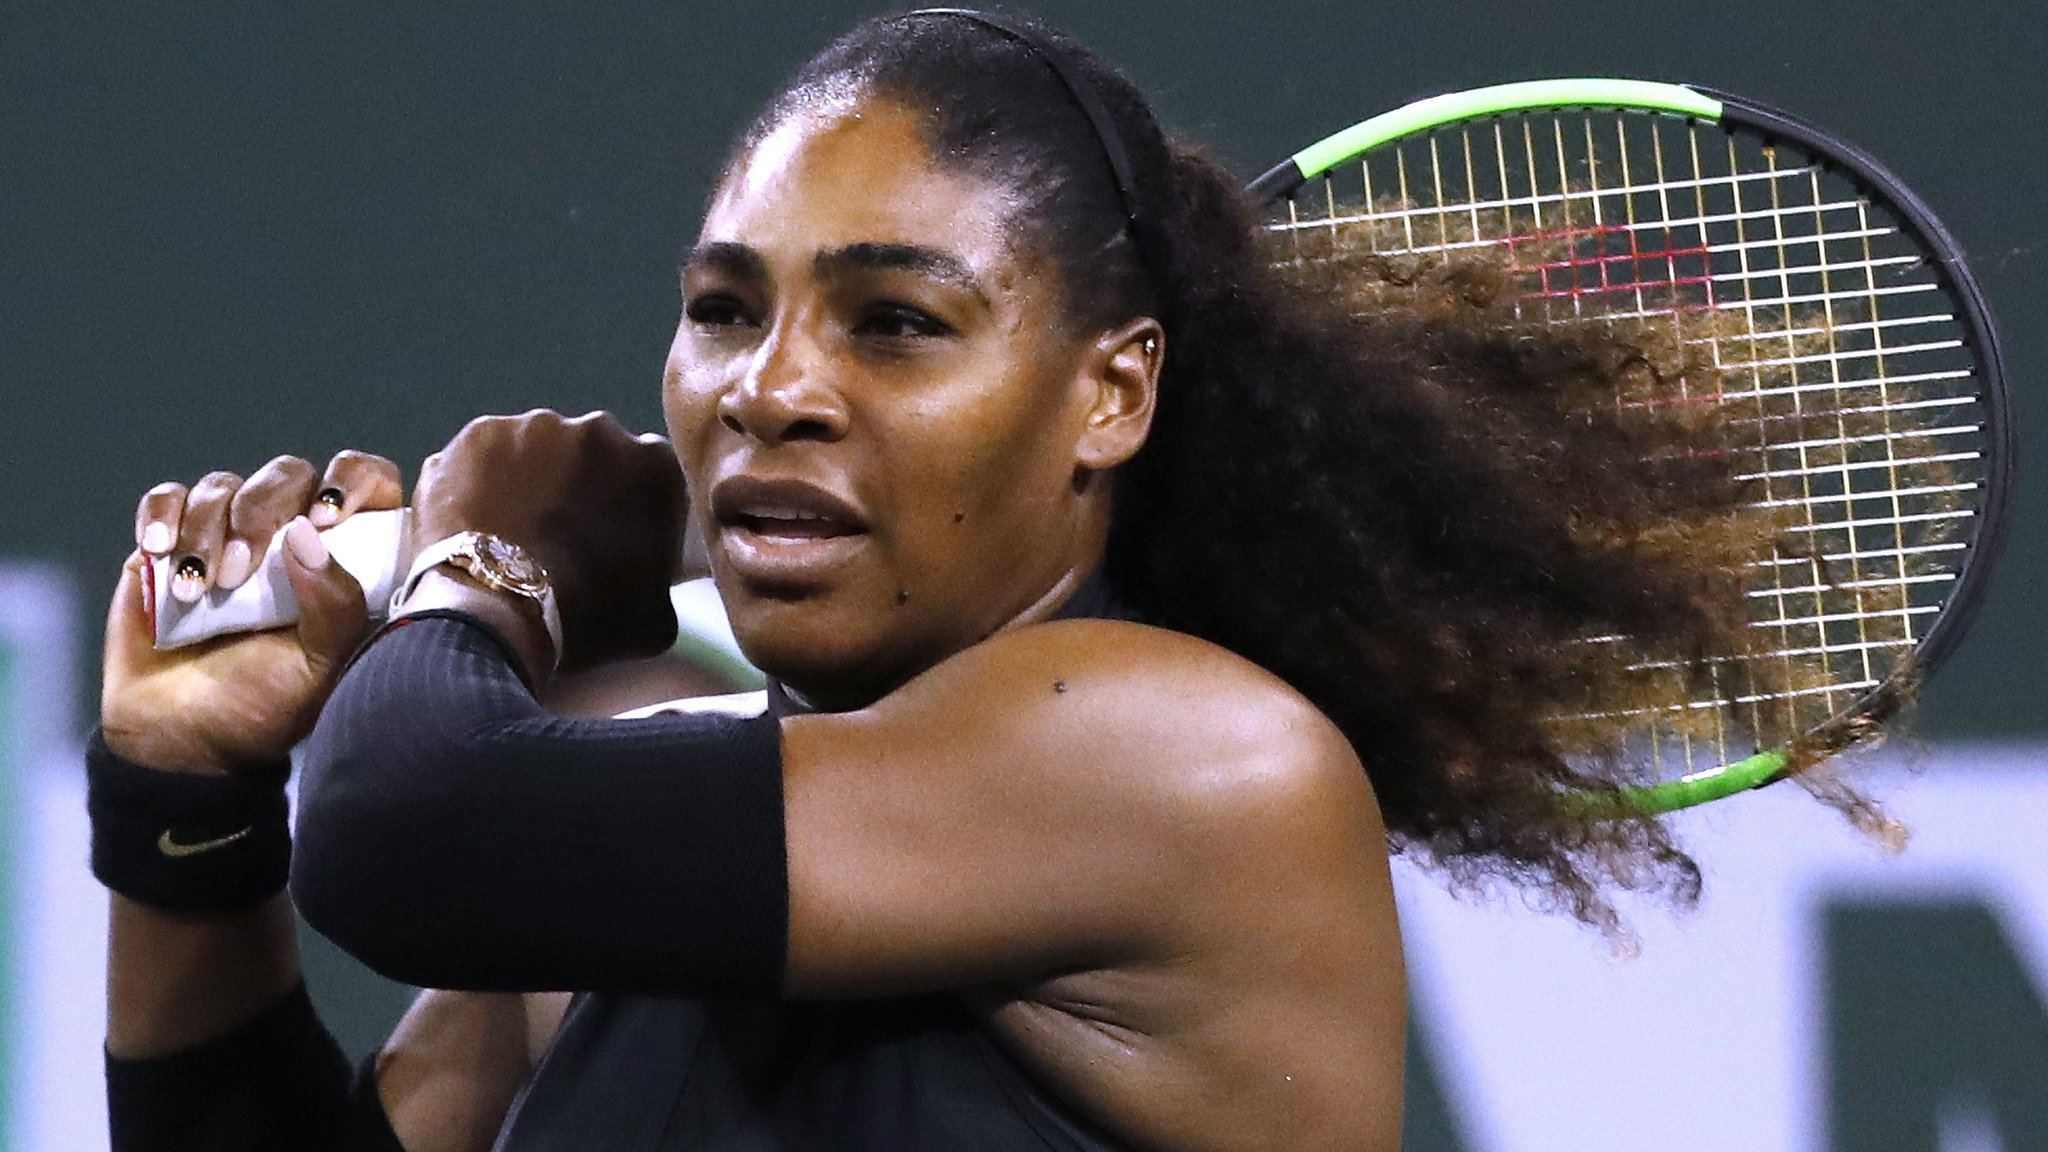 Serena Williams: Miami Open tournament director says seeding rules should change